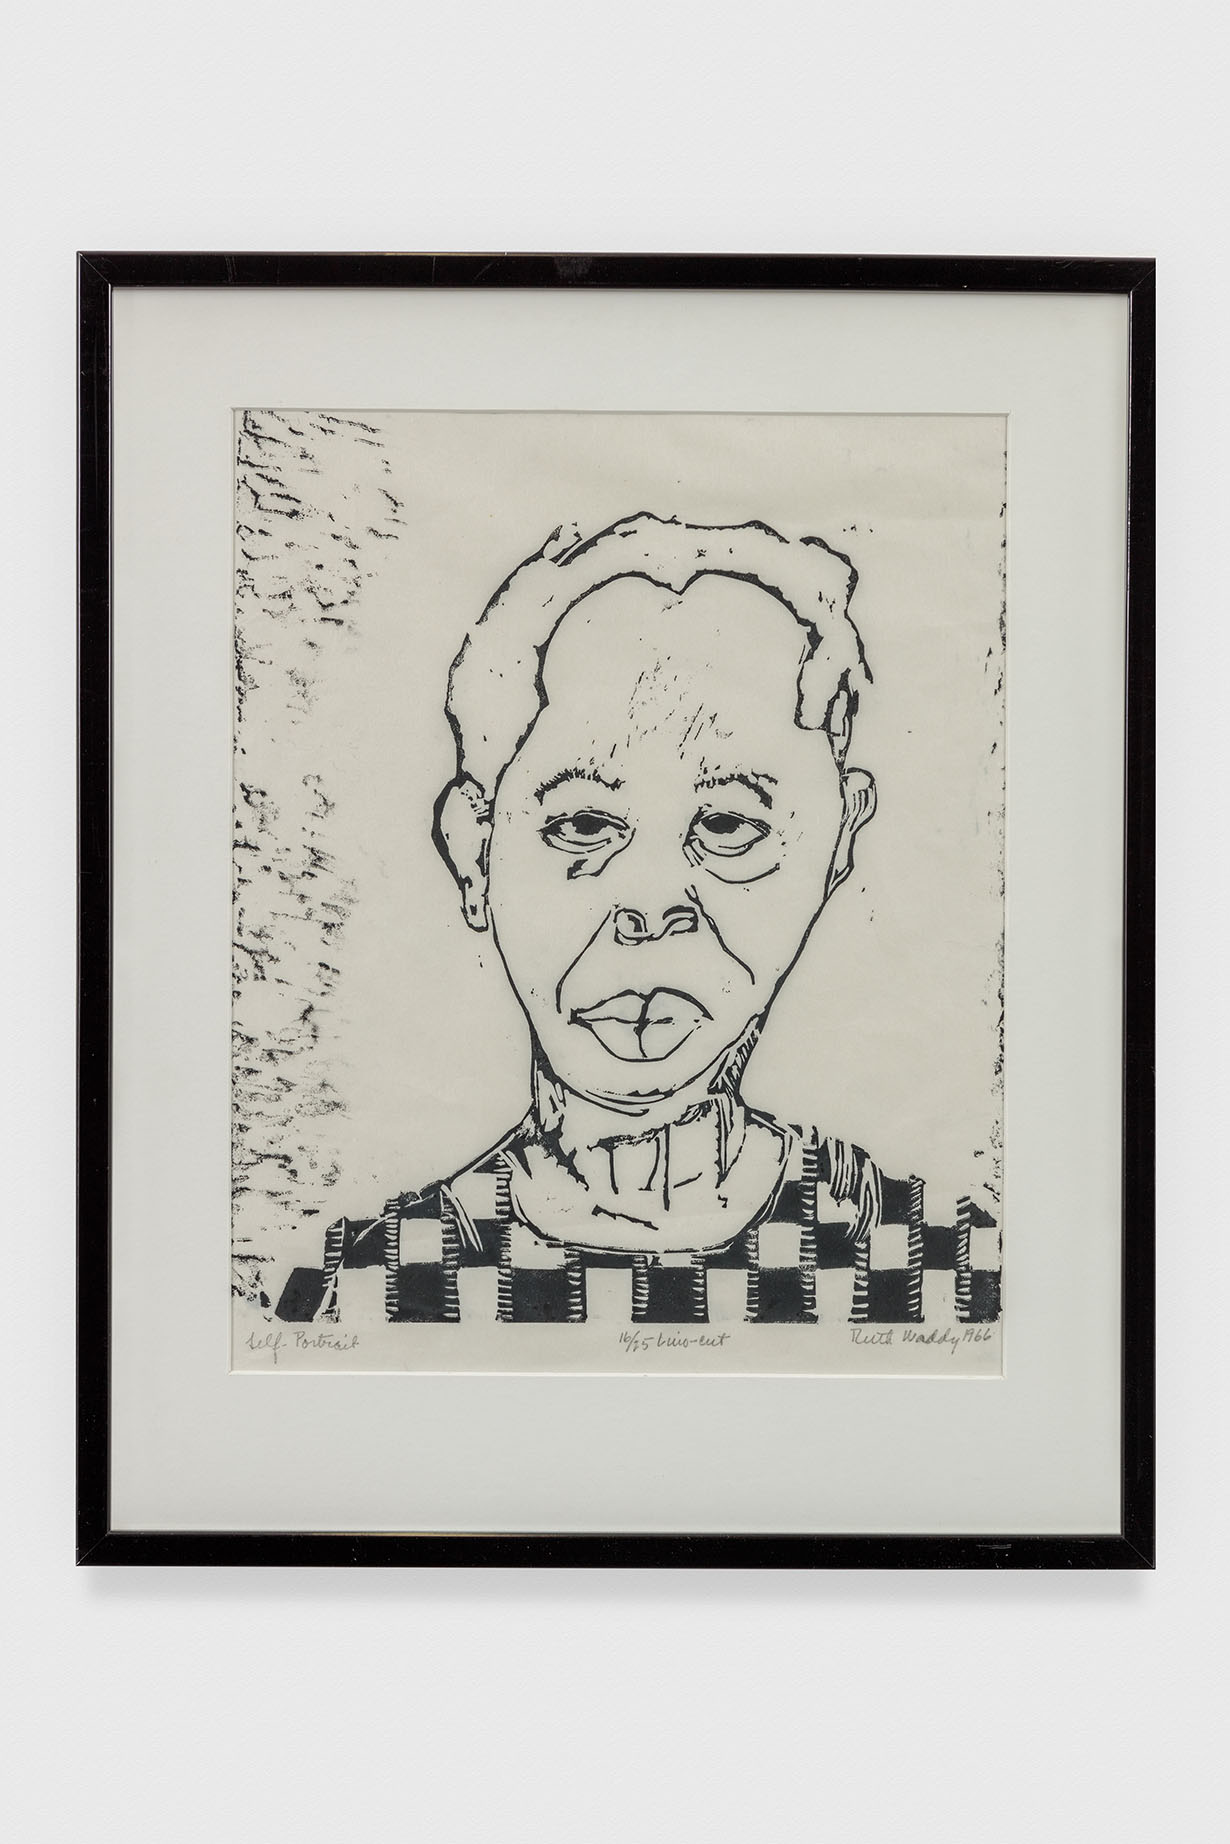 Ruth Waddy, Self Portrait, 1966. Lino-cut print. 23 x 19 3/4 in. © Ruth Waddy. Courtesy The Eileen Harris Norton Collection. Photo: Charles White.